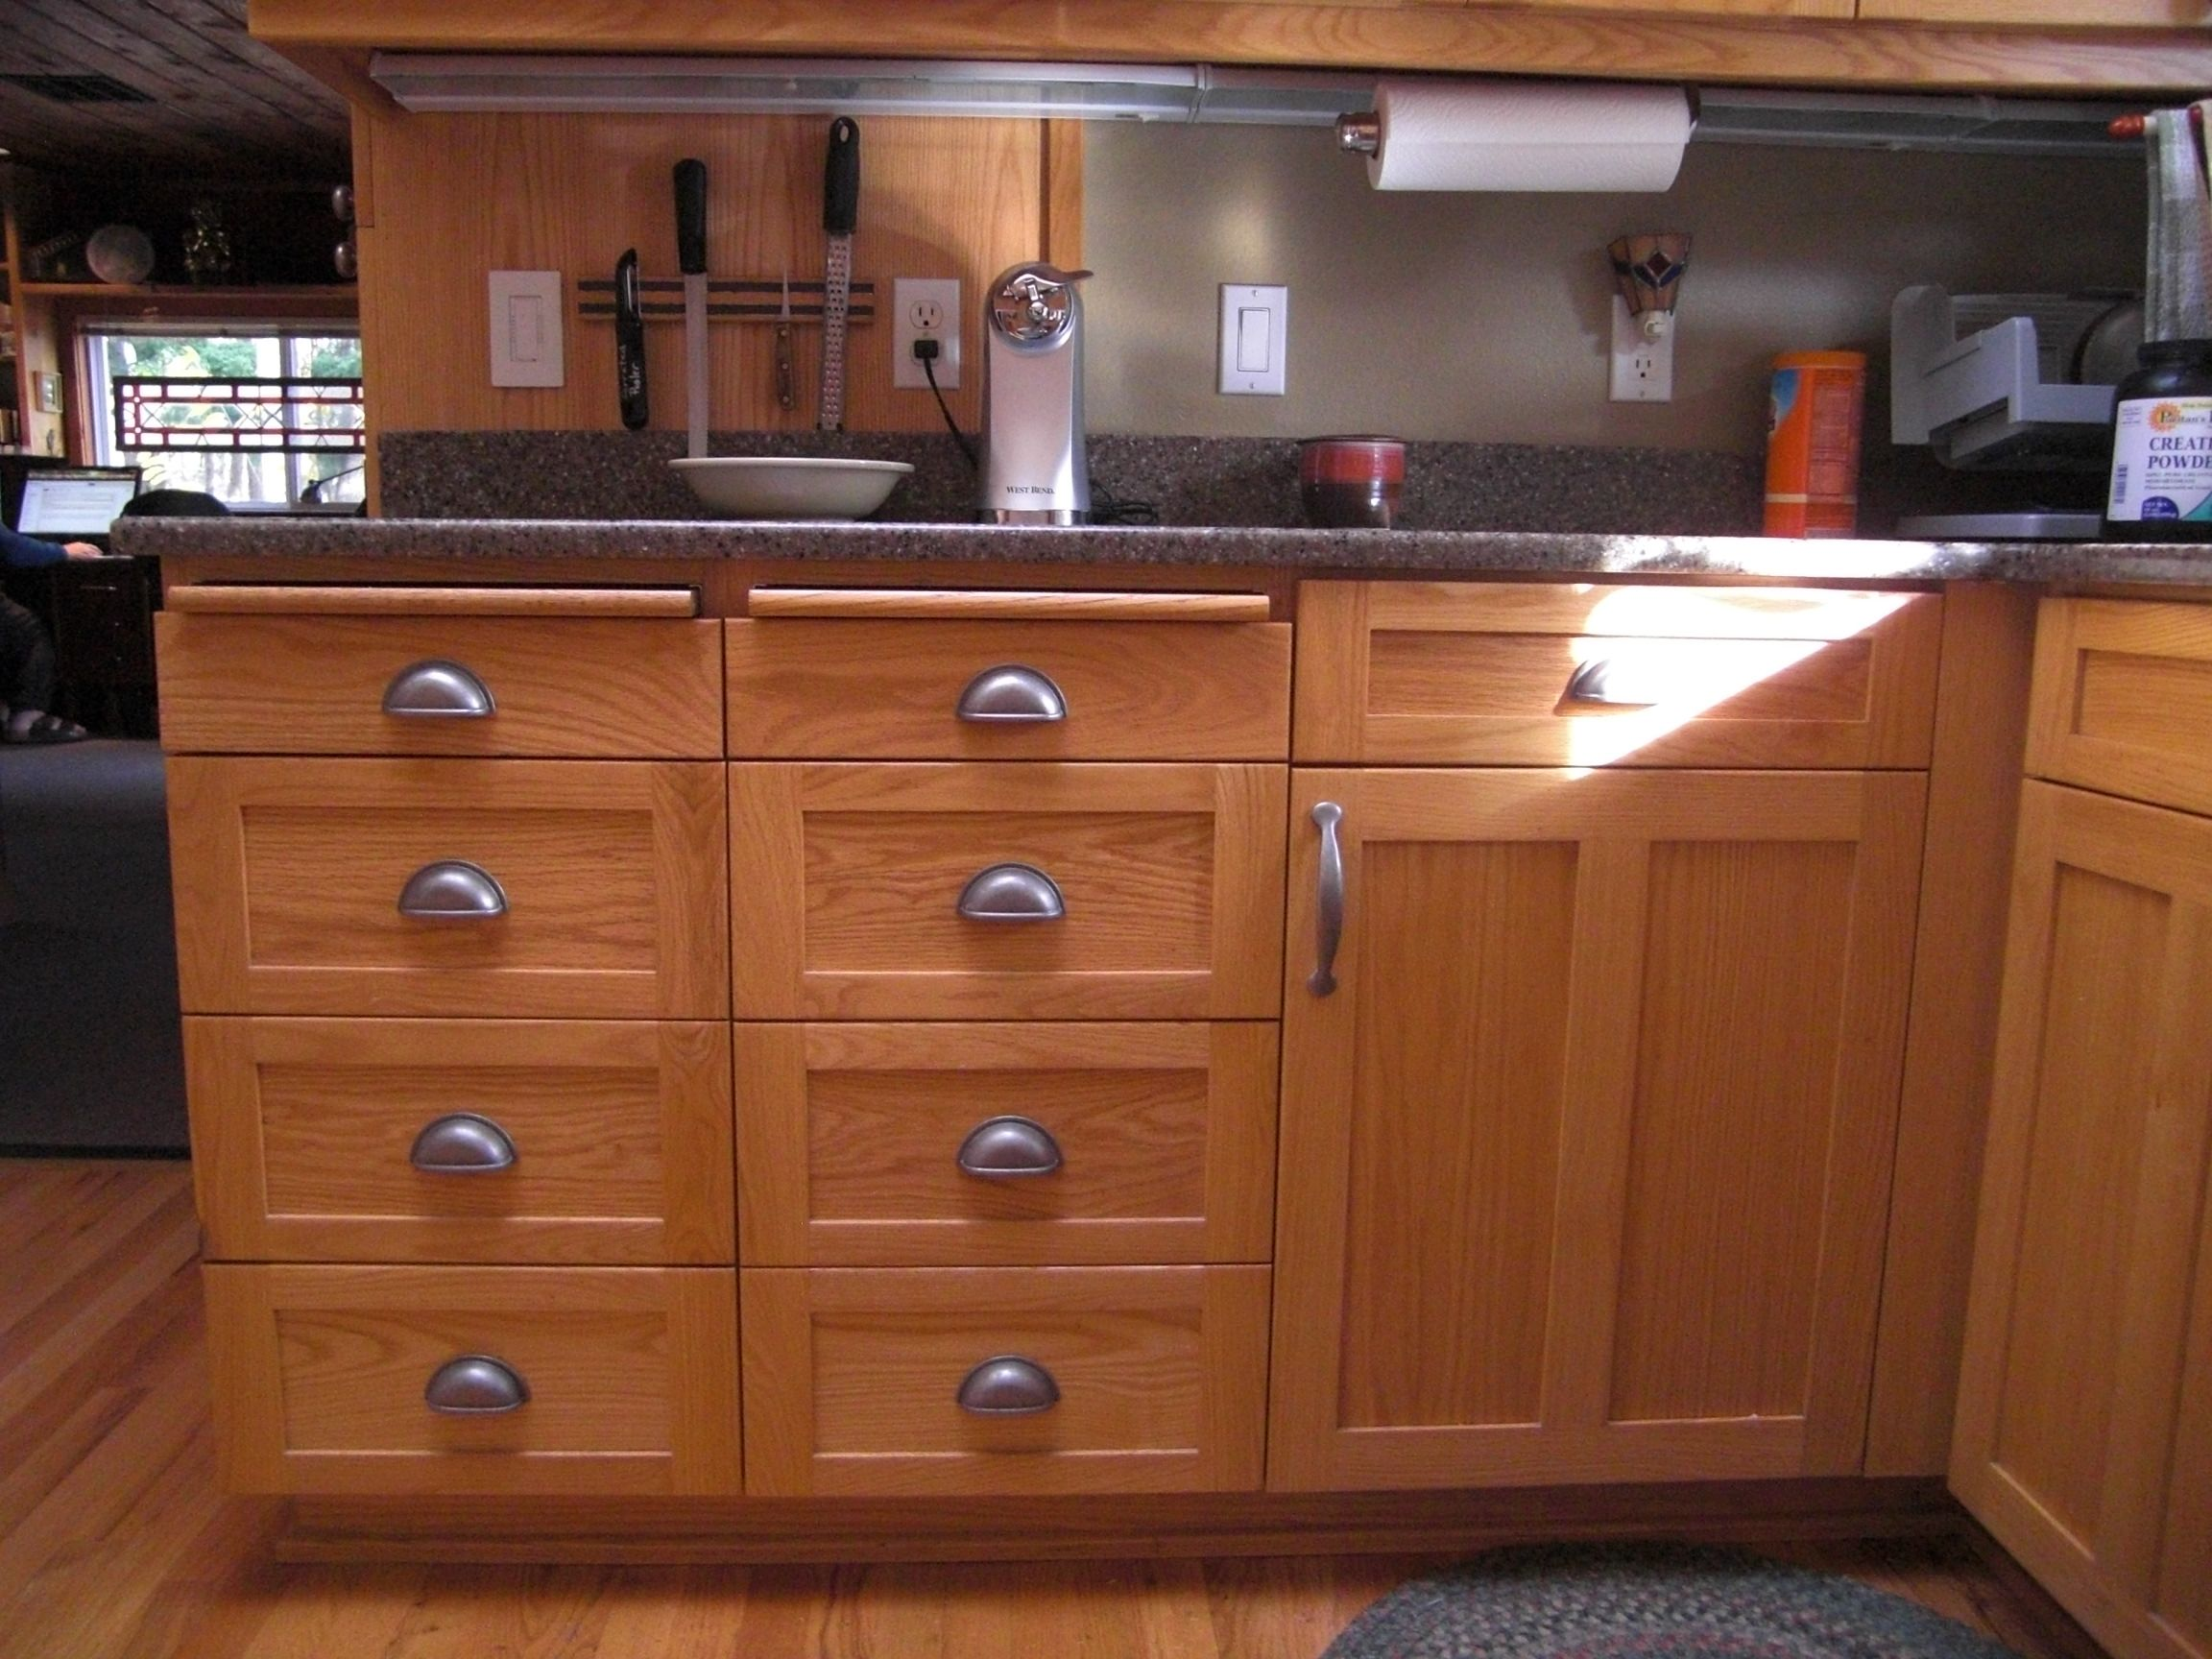 Hickory Shaker Style Kitchen Cabinets Cookware Sets Love The Cup Pulls Ideas For Elliott Pinterest